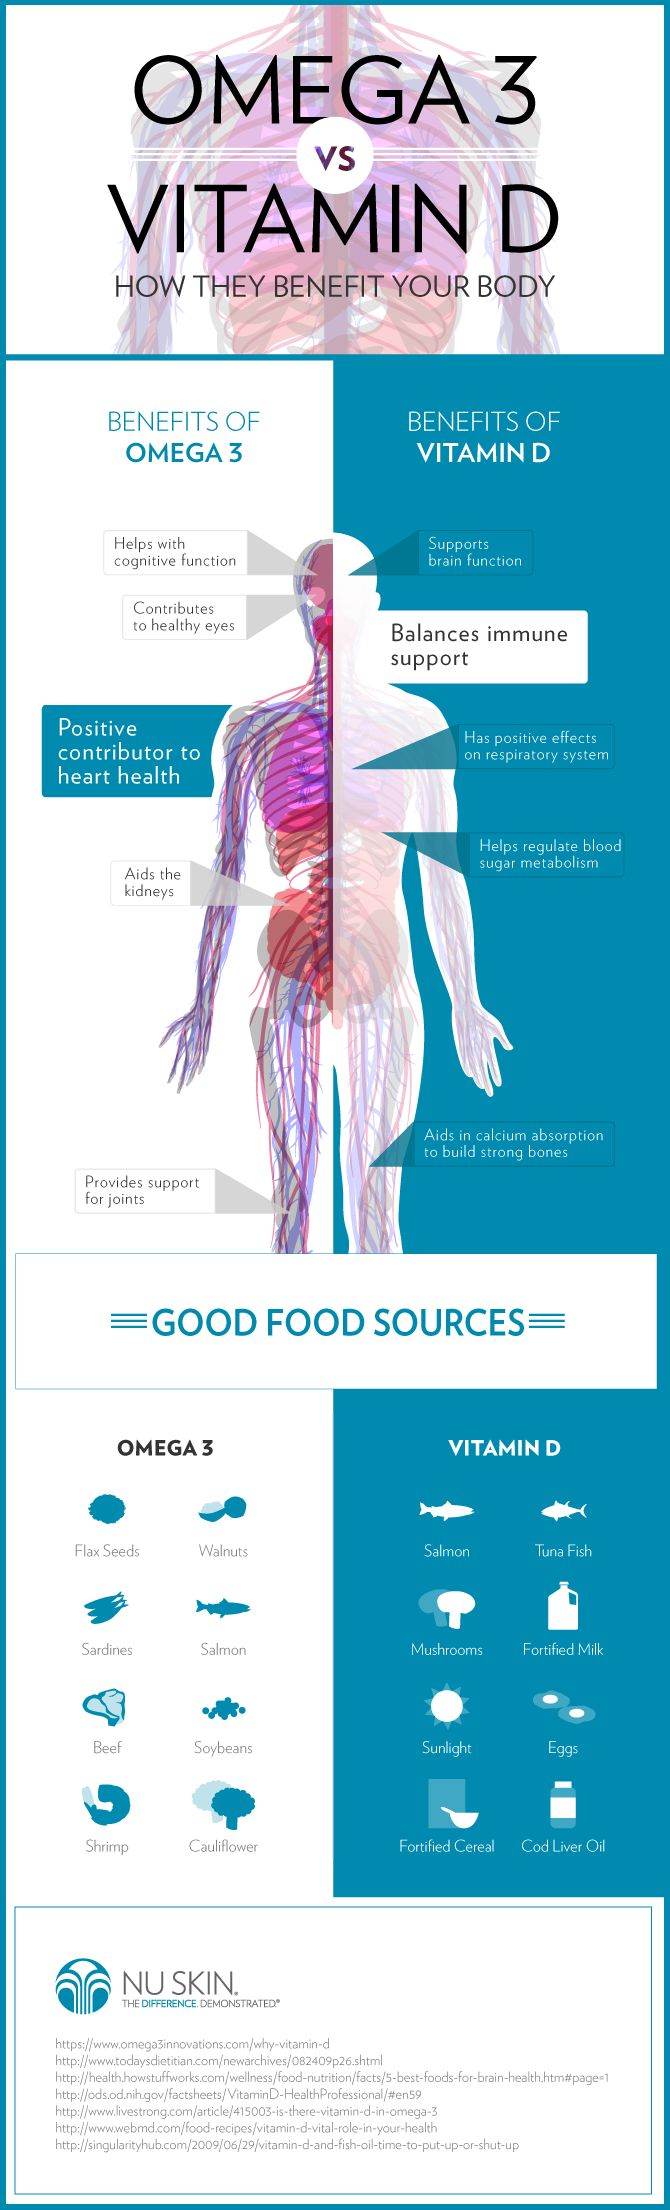 Omega 3 and Vitamin D provide a number of amazing benefits for your body! #NuSkin